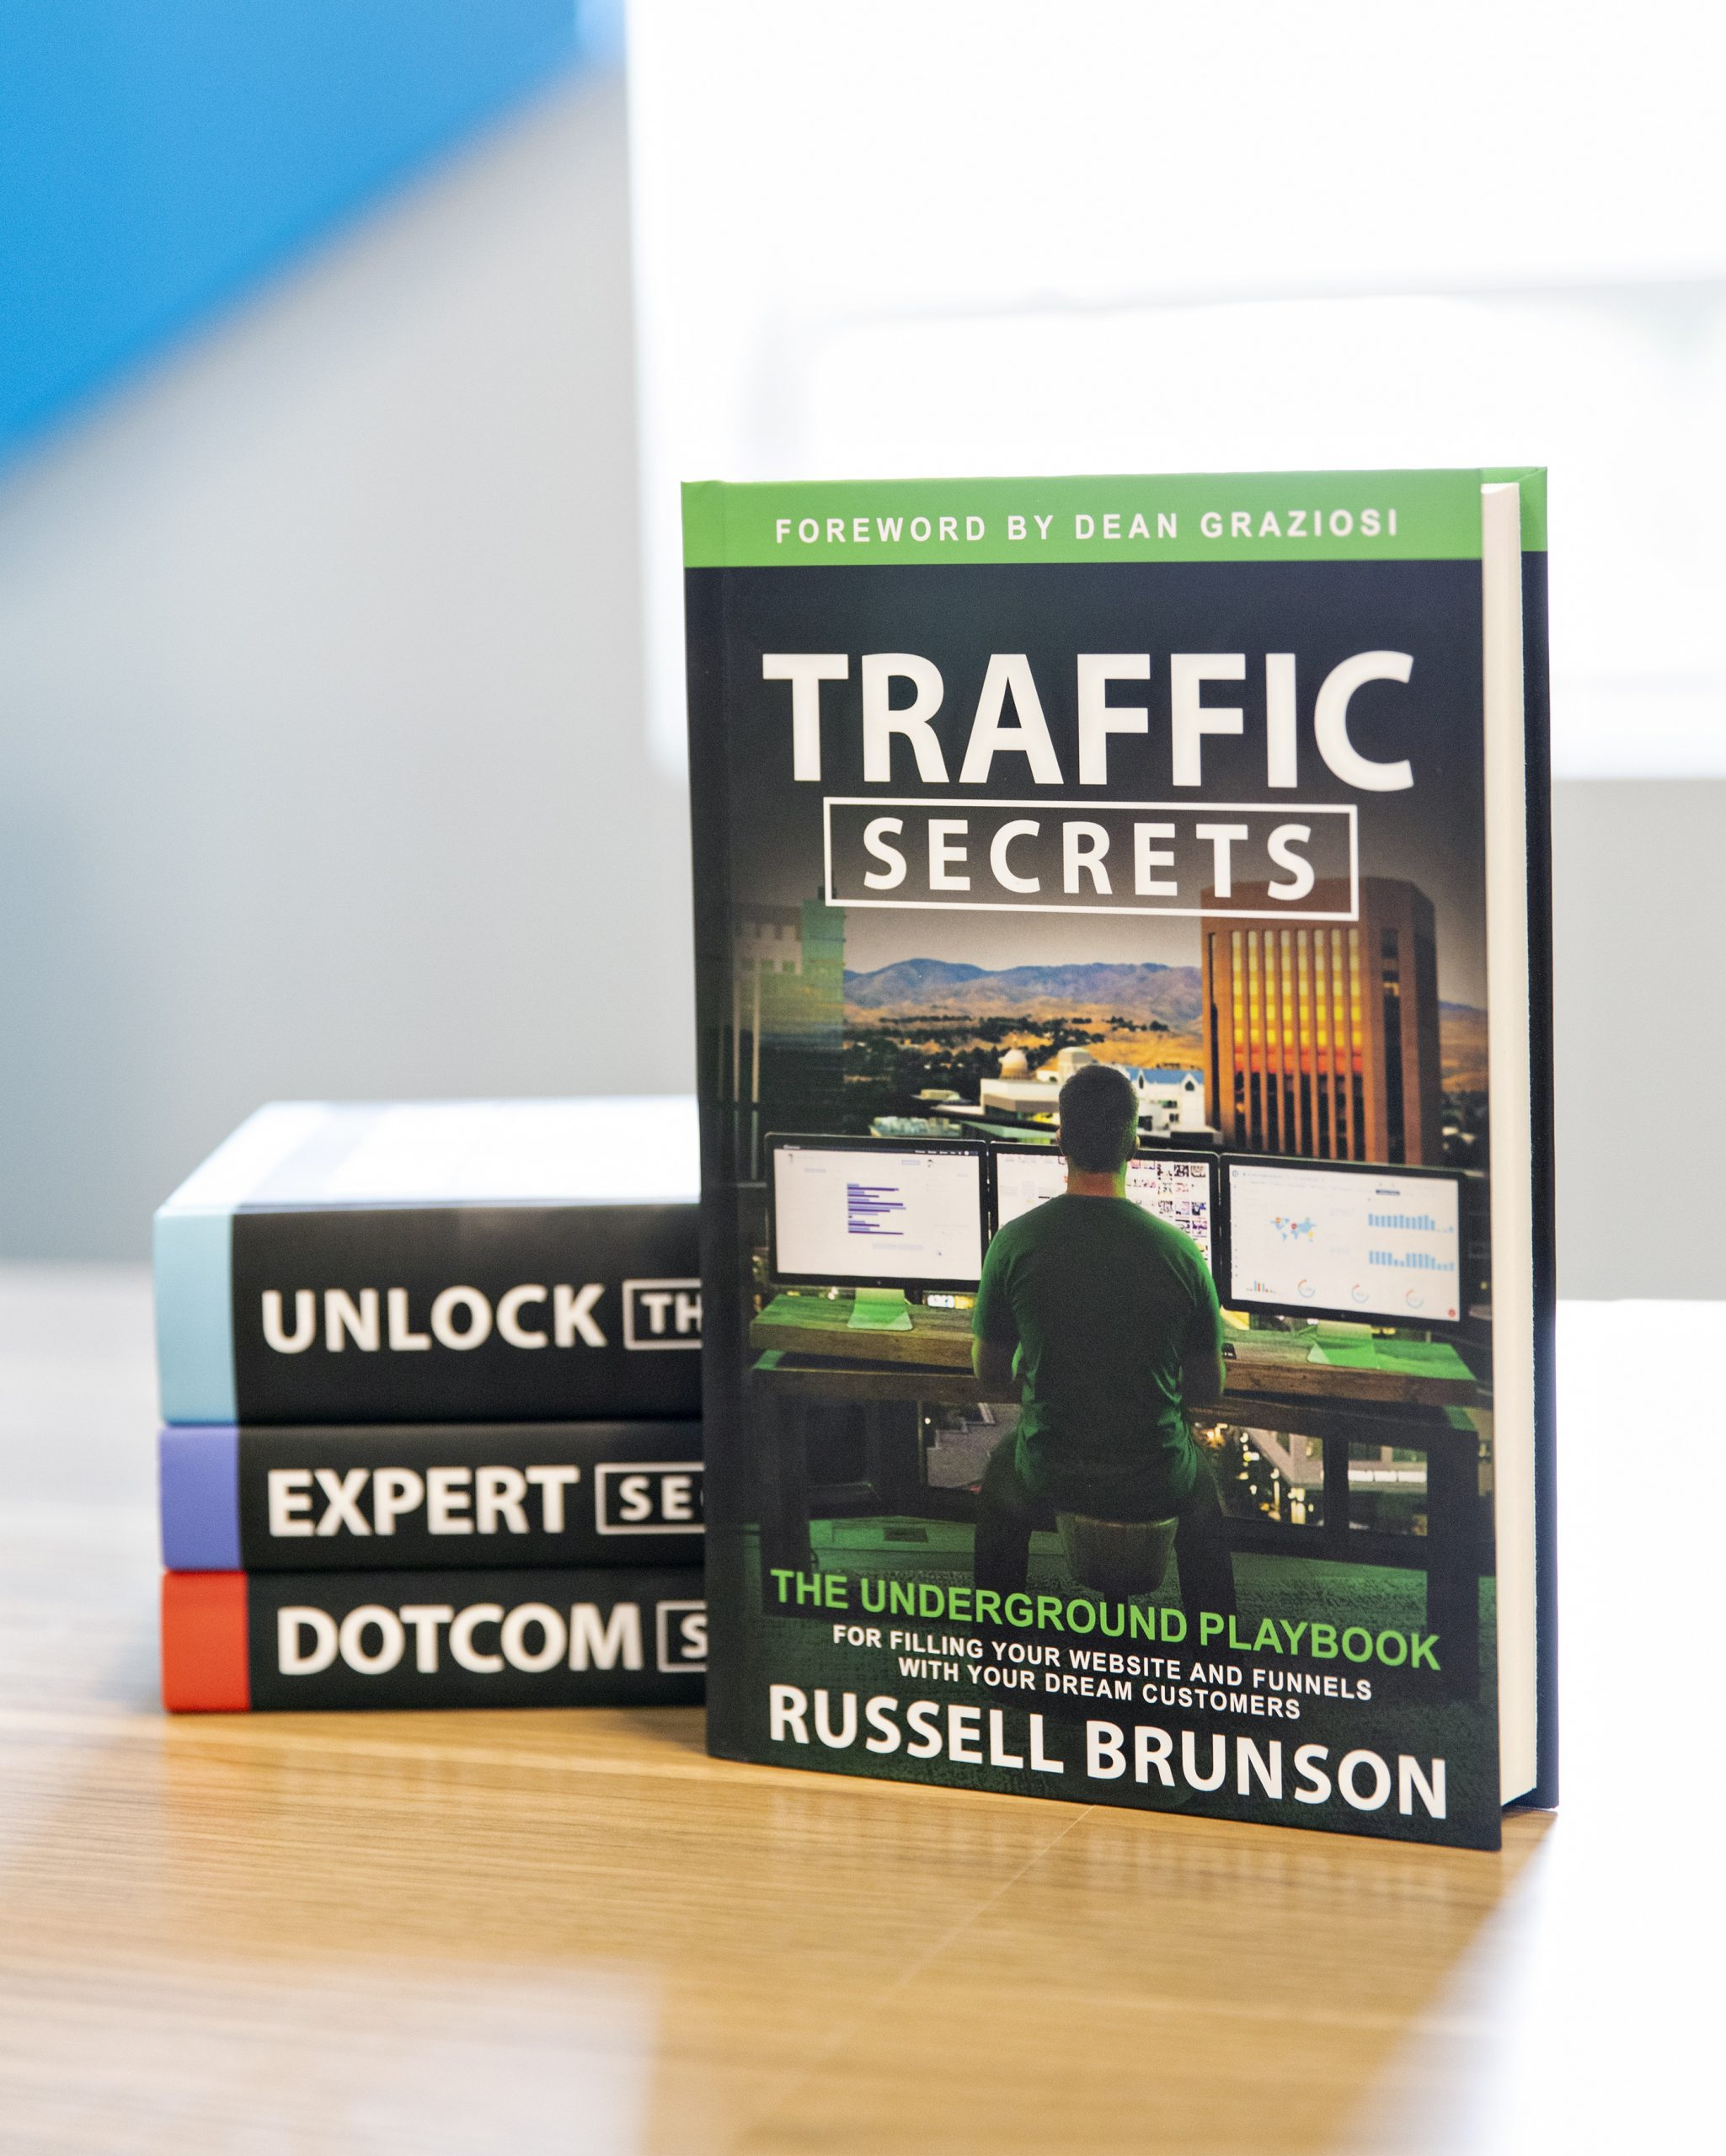 traffic secrets and other books by russell brunson